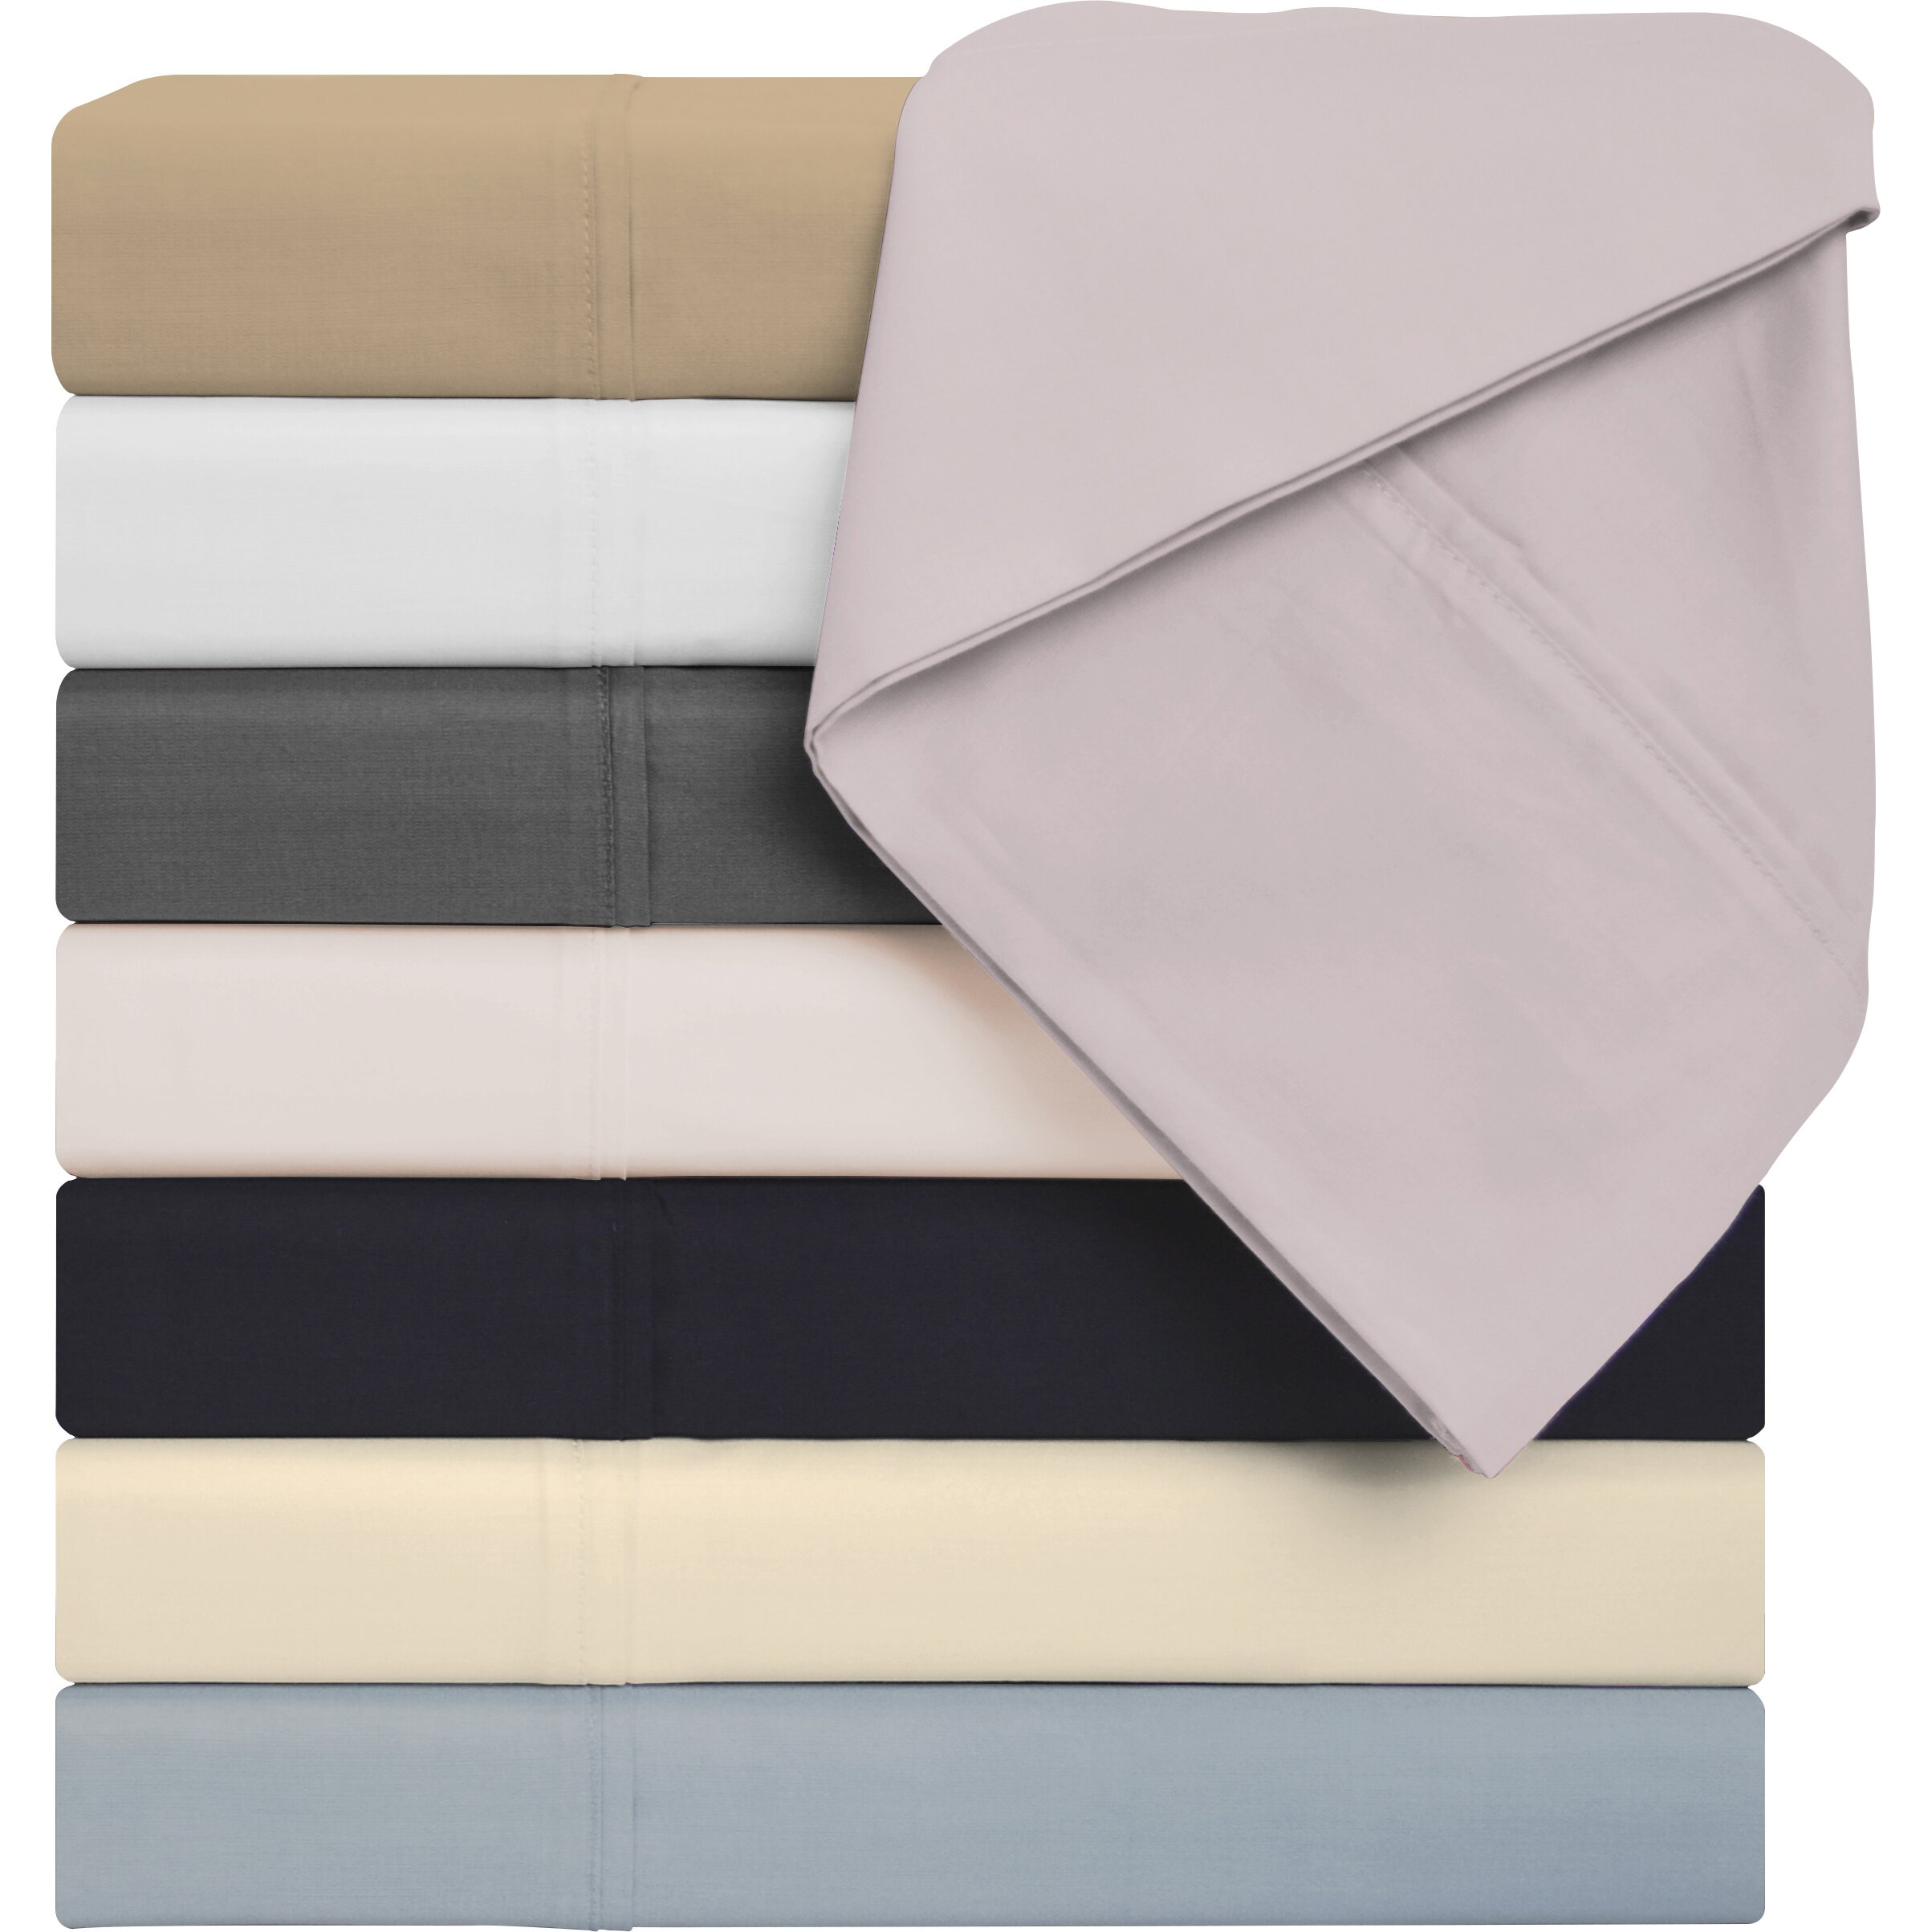 Simple luxury 425 thread count cotton solid sheet set for What is thread count in sheets